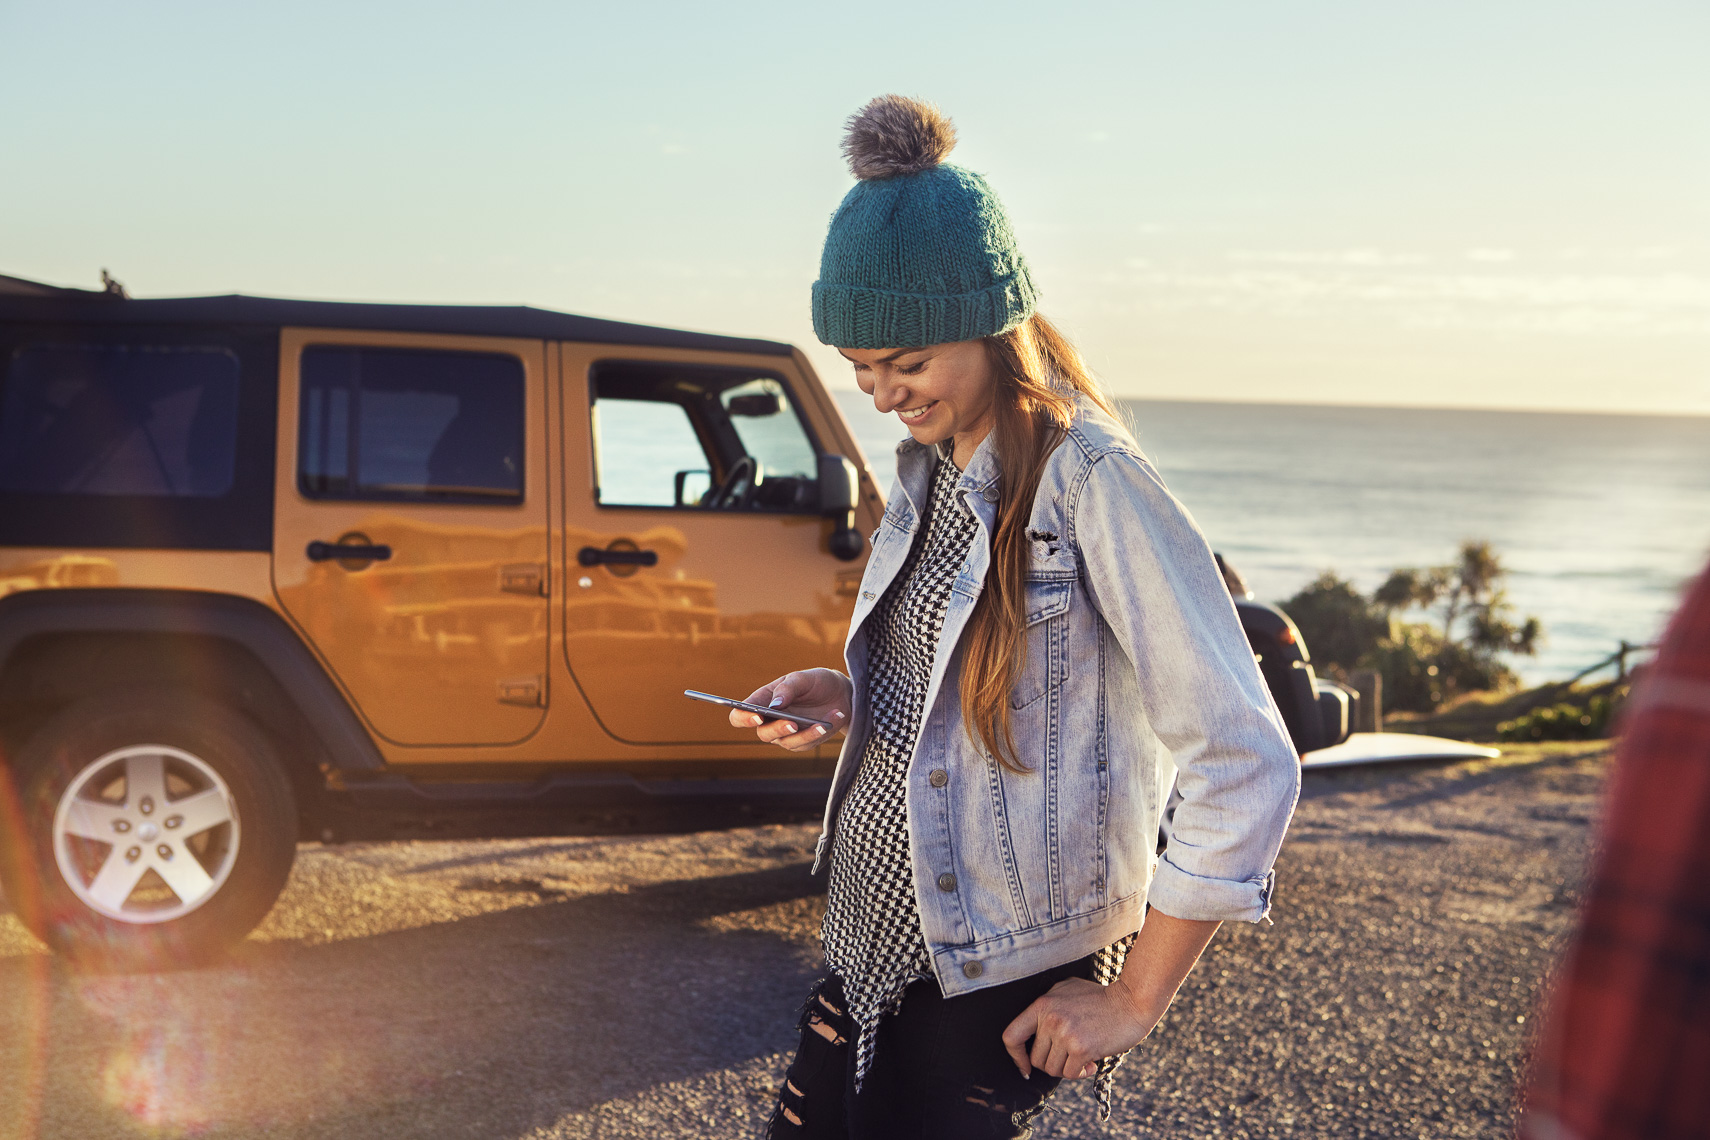 A girl smiling at her phone with an orange jeep in the background